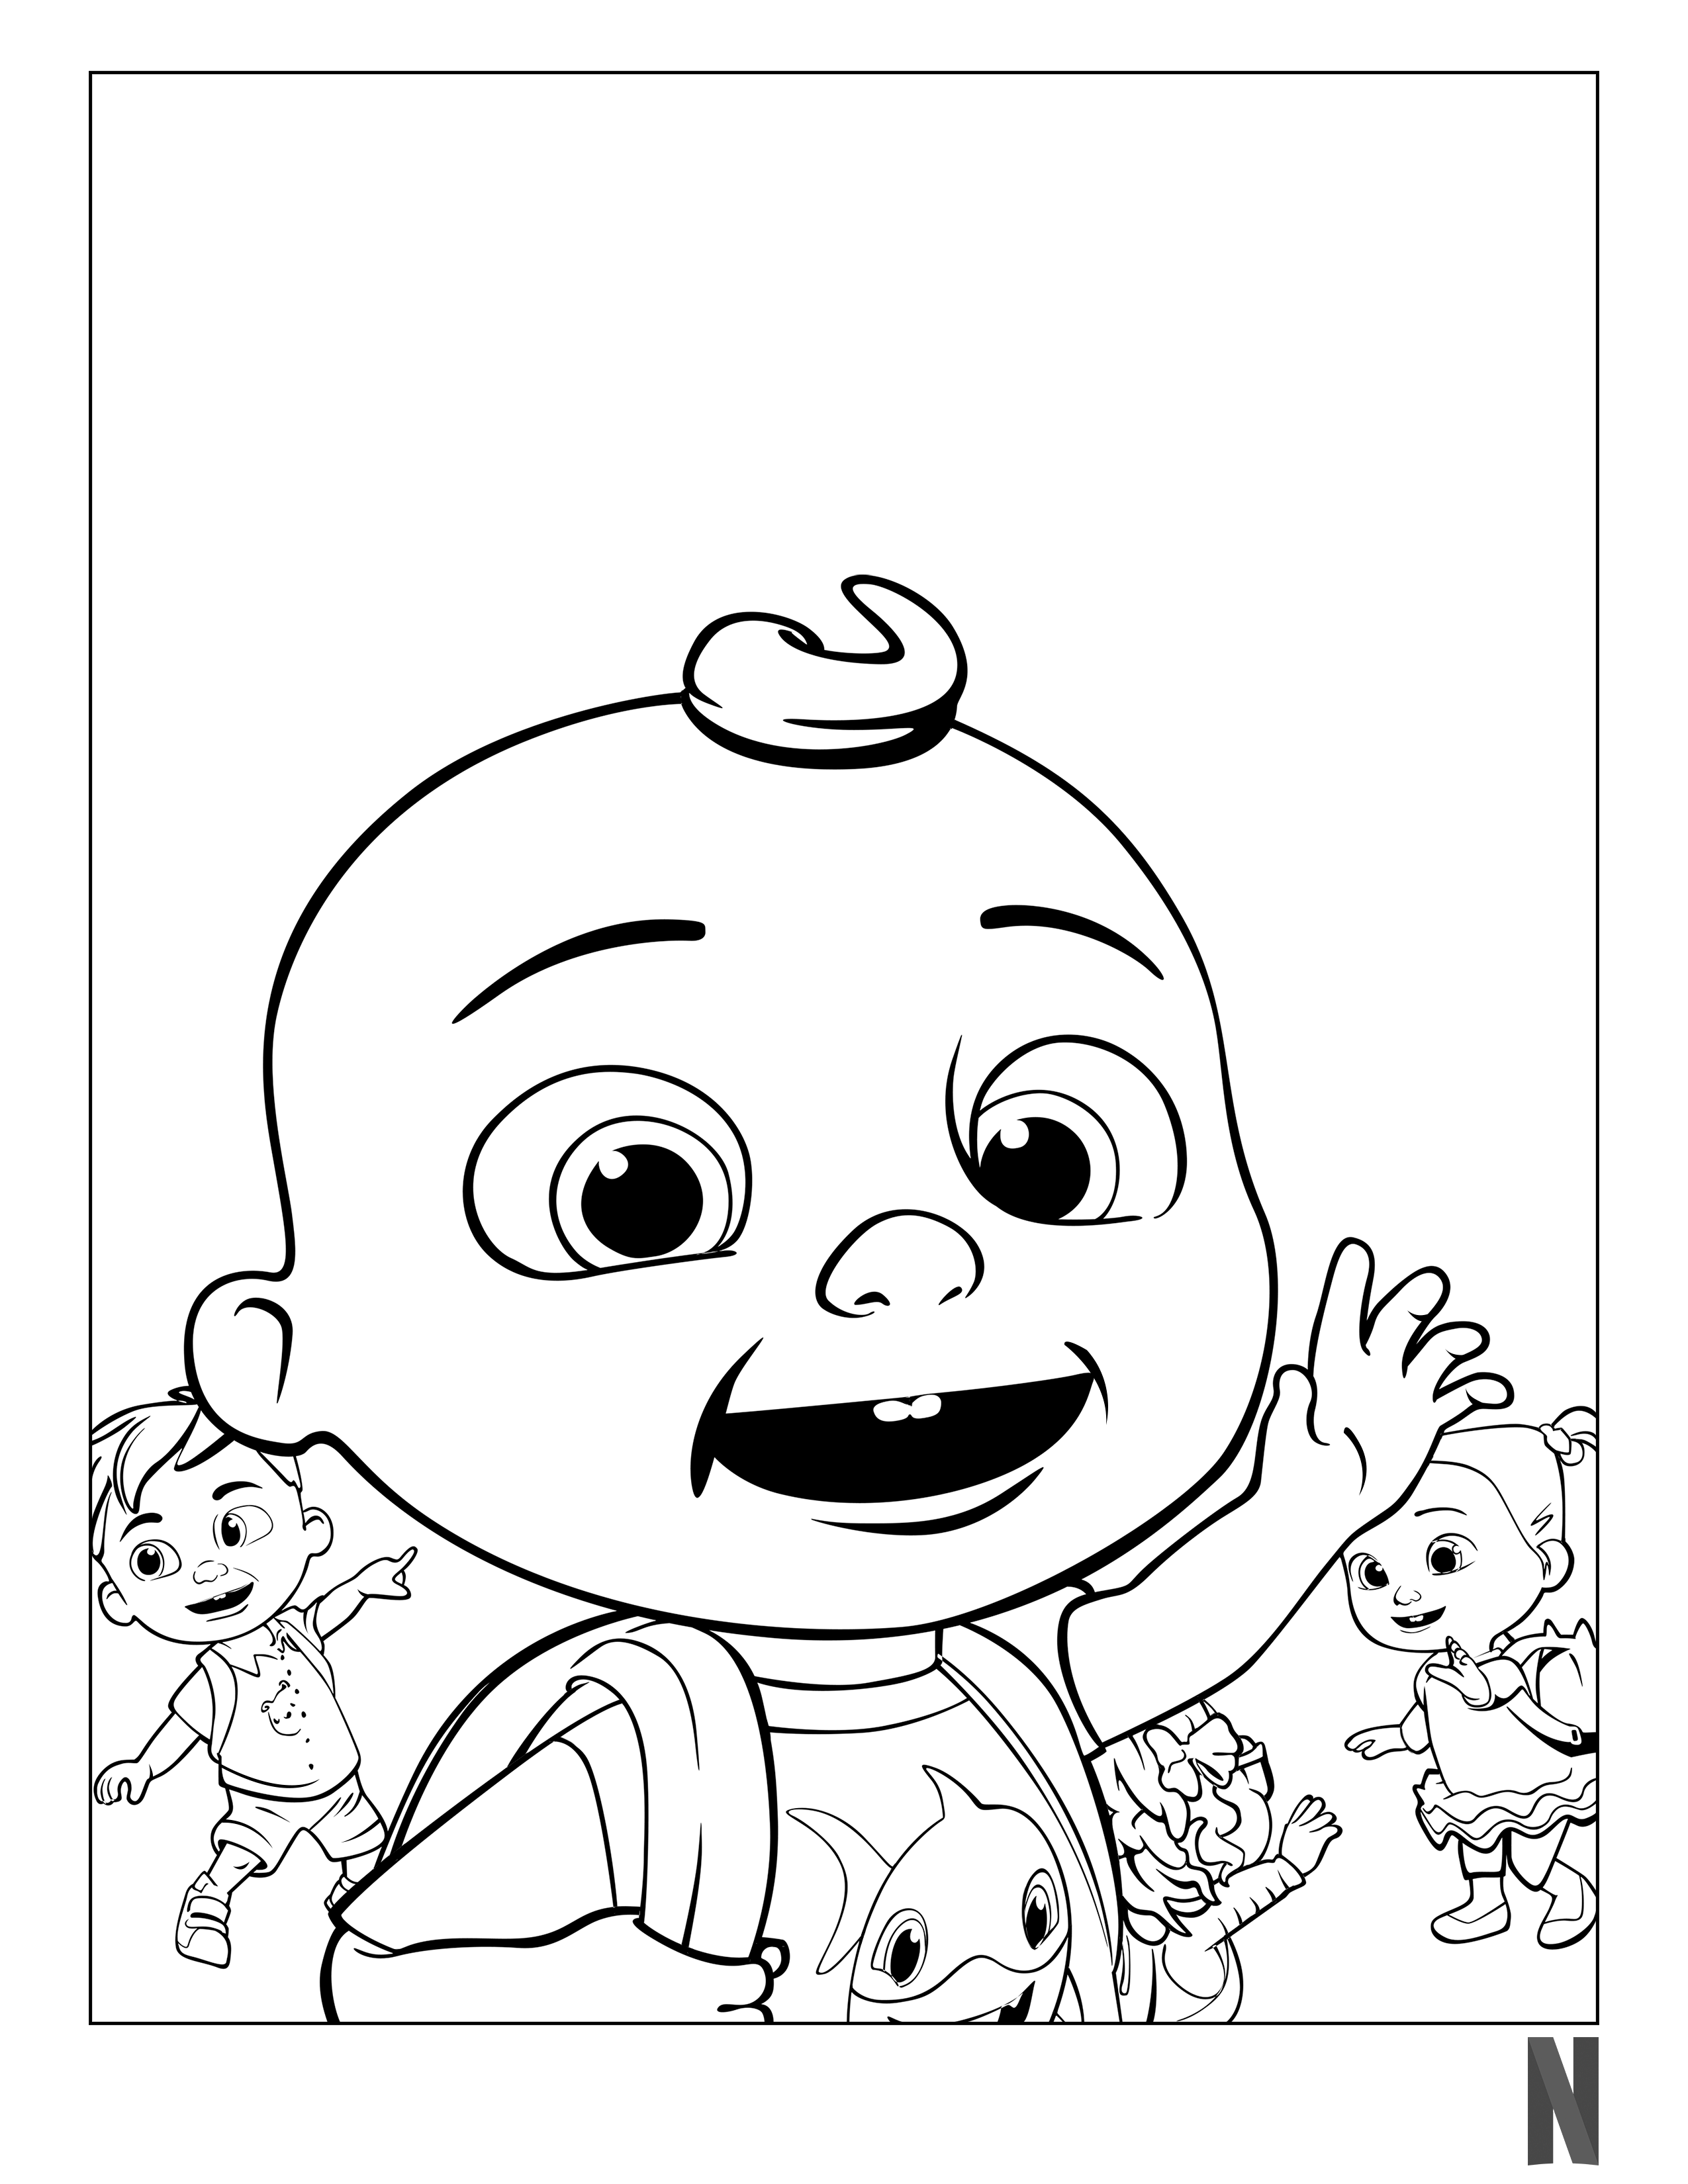 Cocomelon Coloring Page Coloring Pages My Little Pony Drawing Coloring Books [ 3300 x 2550 Pixel ]